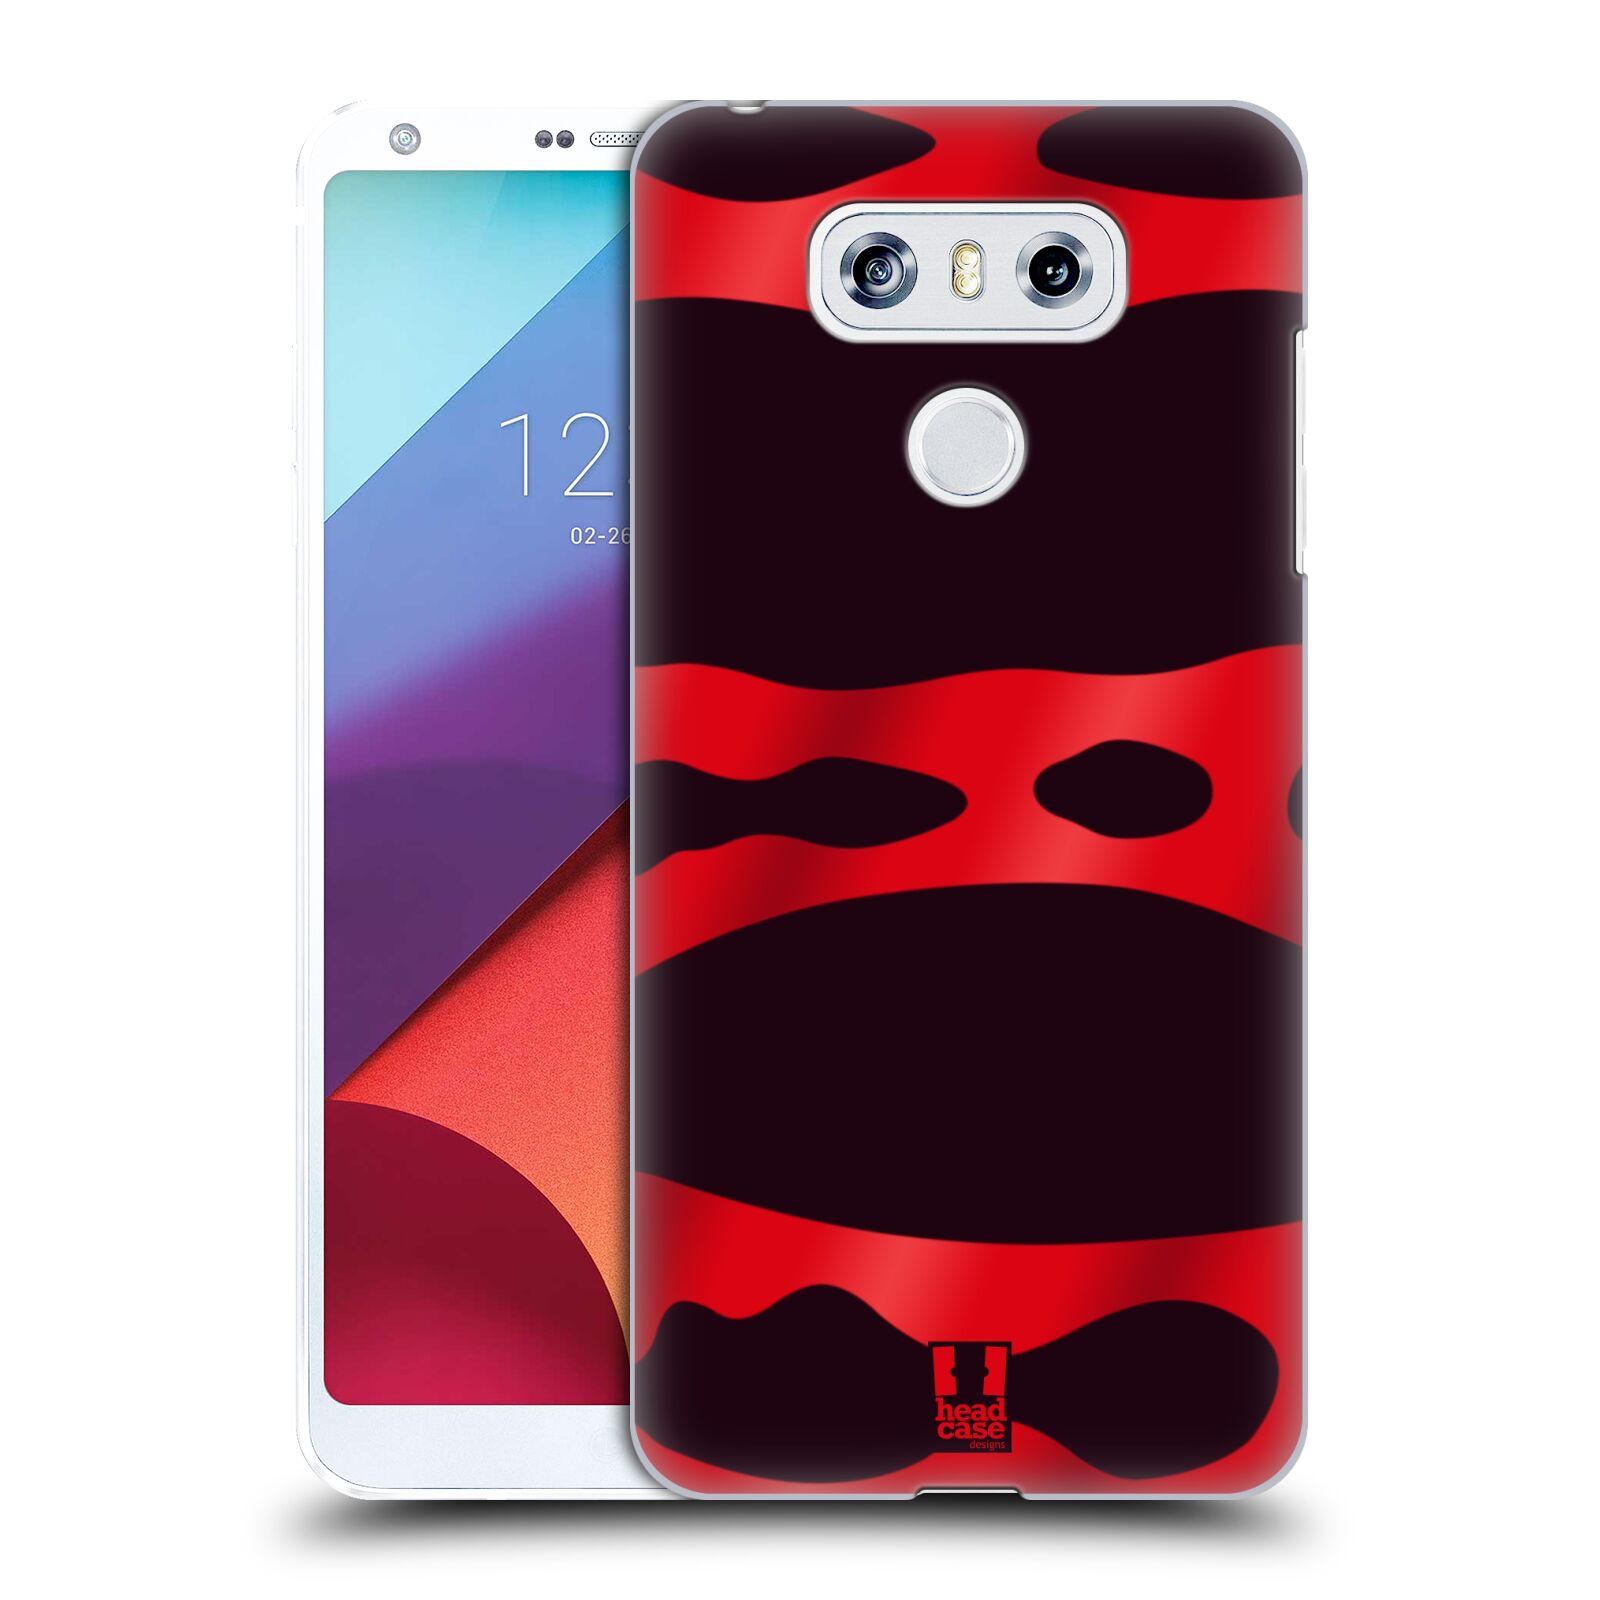 HEAD-CASE-DESIGNS-POISON-DART-FROG-PATTERNS-HARD-BACK-CASE-FOR-LG-G6